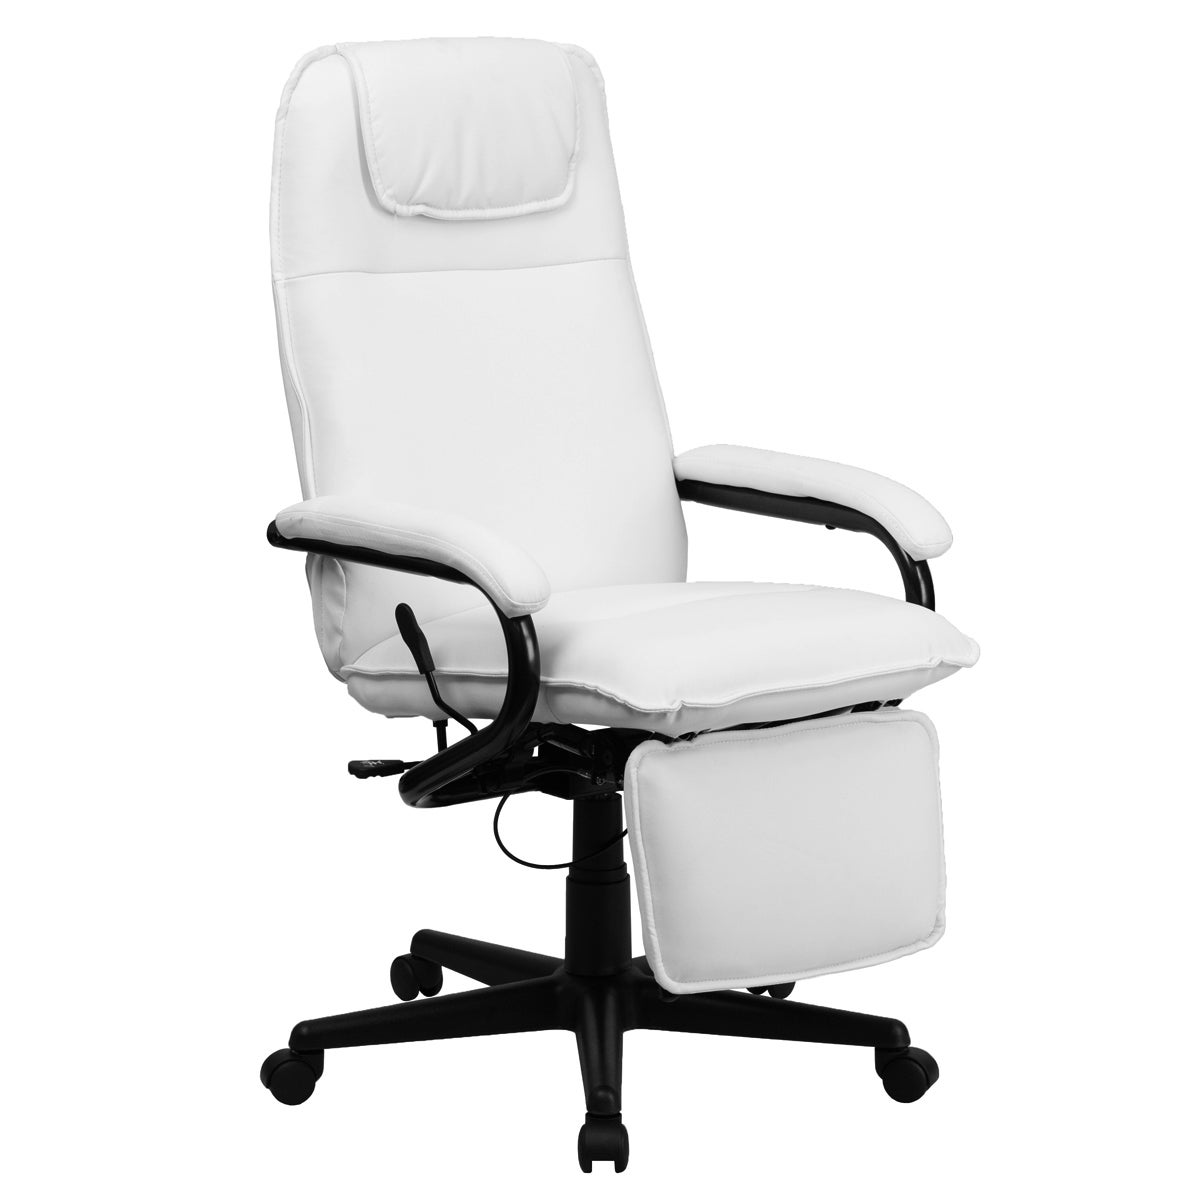 w chair heated recliner footrest office massage reclining leather